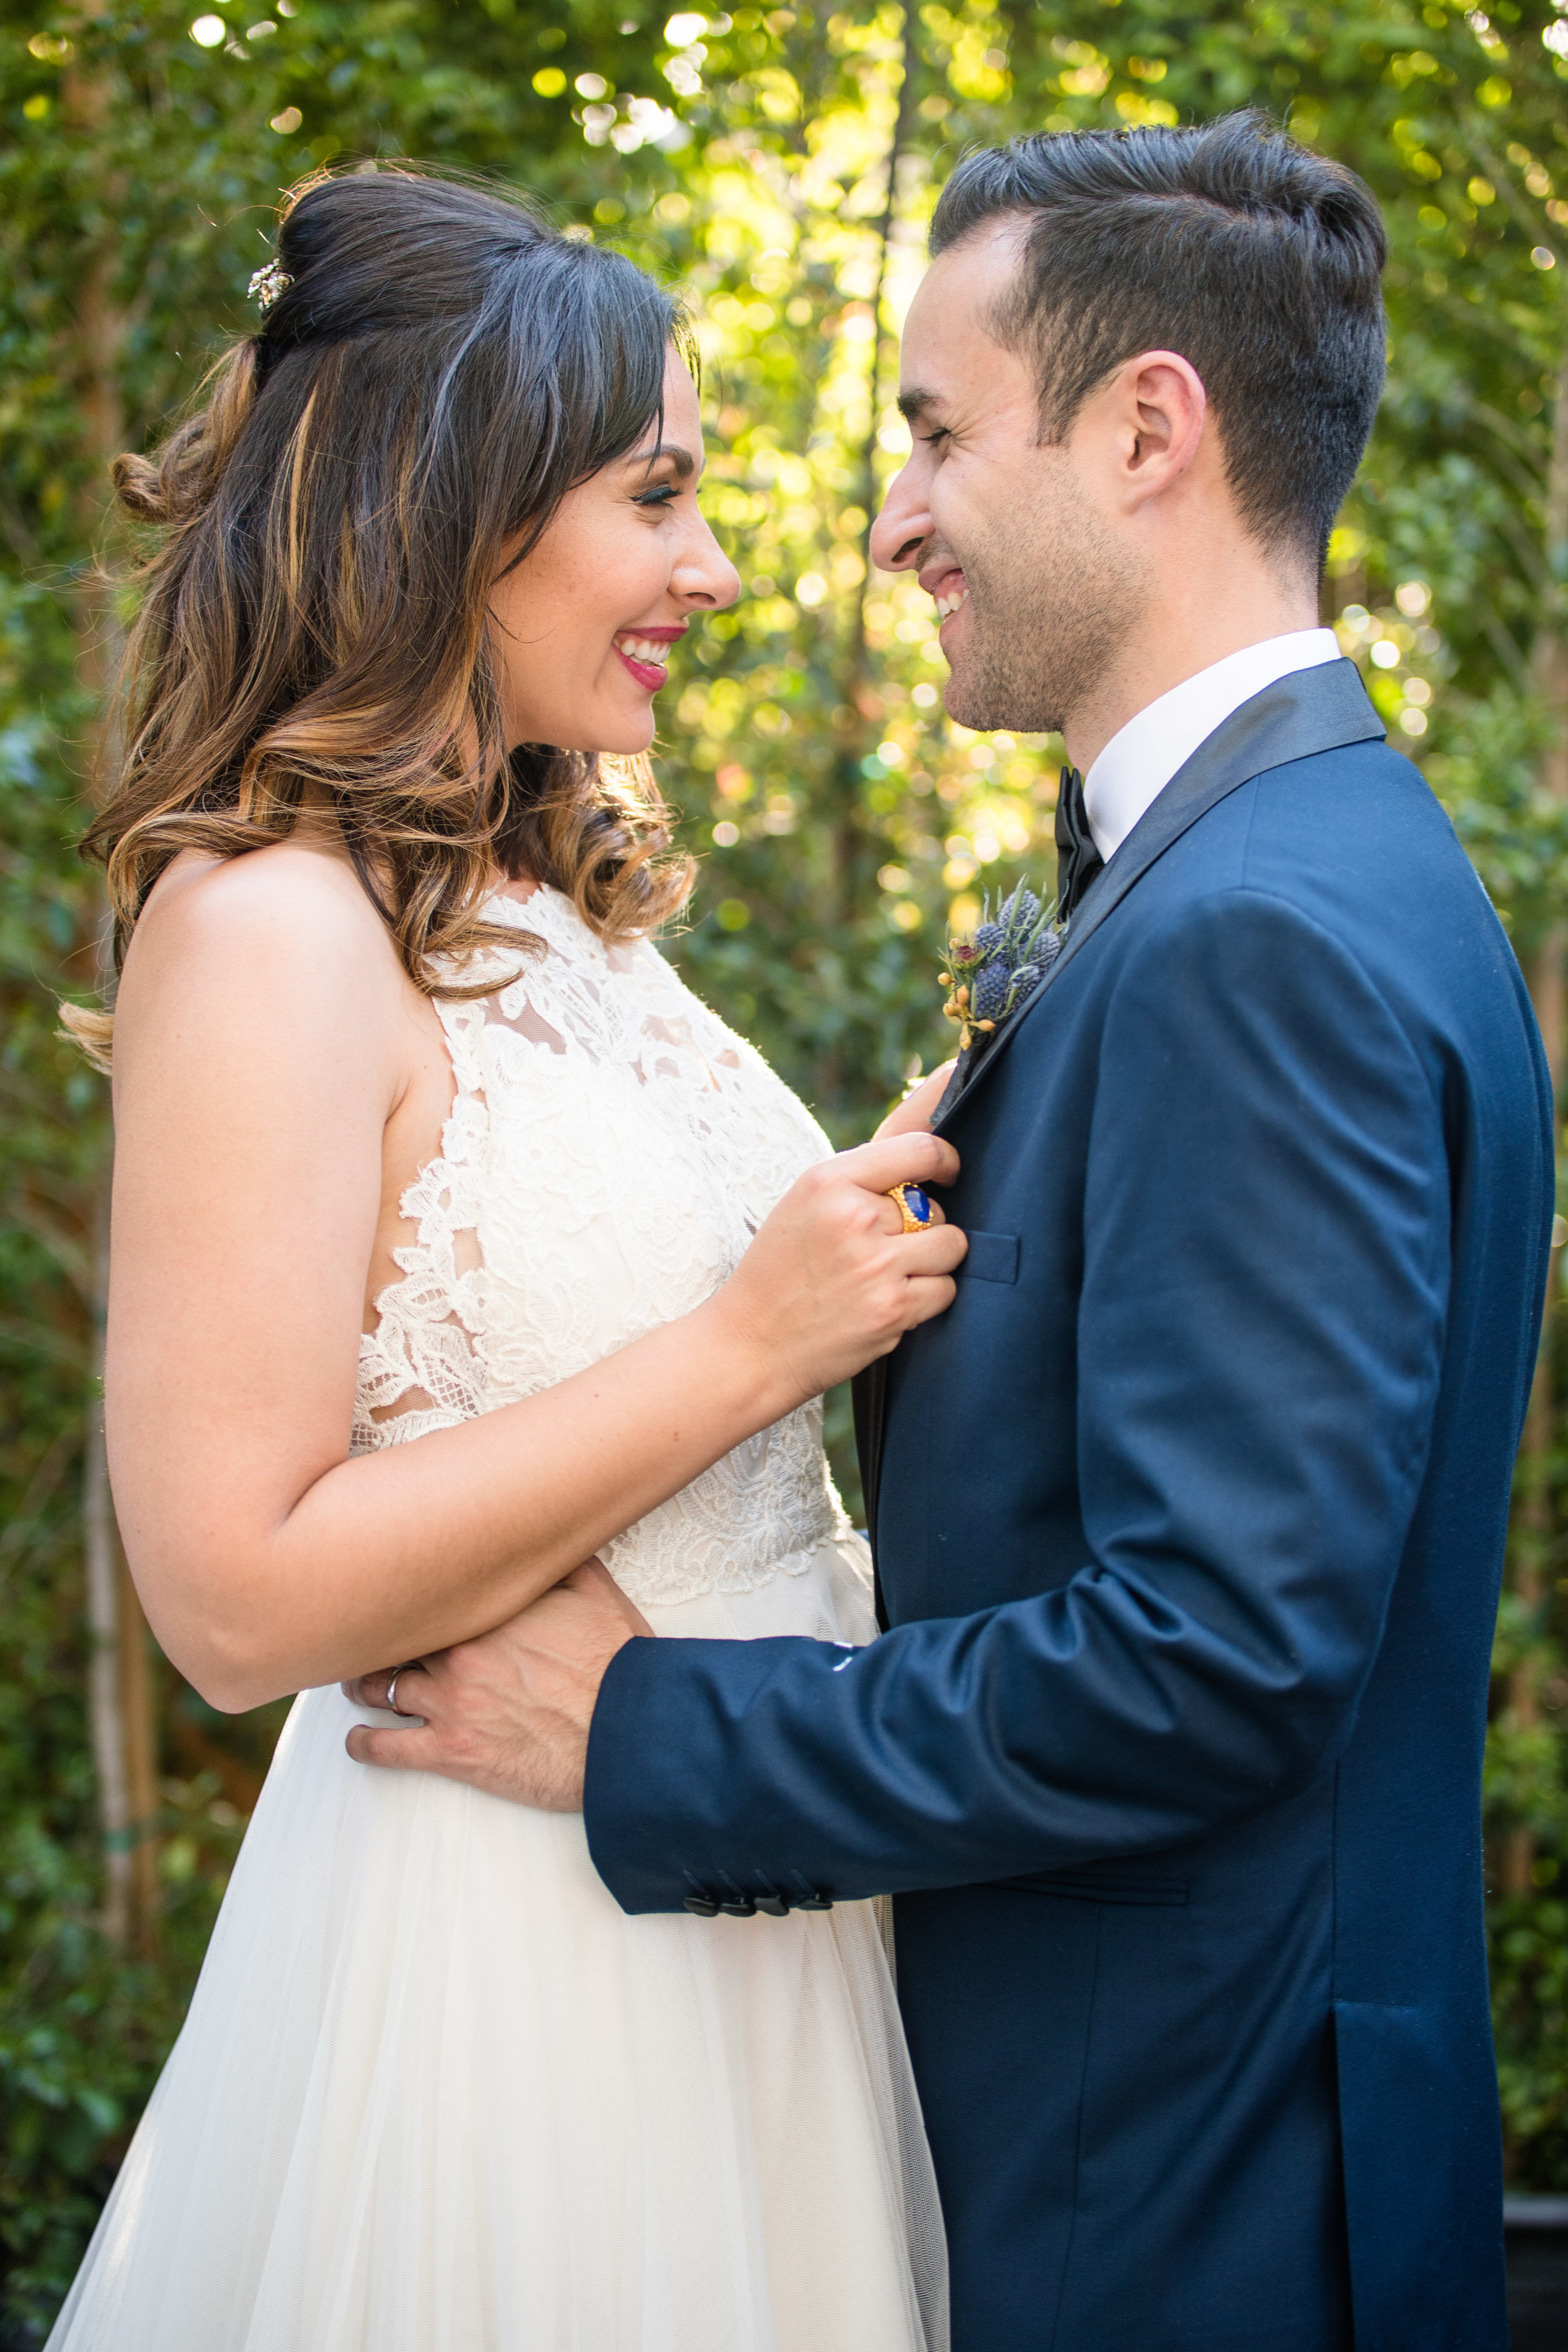 Vibrant Fiesta Backyard Wedding Reception bride and groom pose in front of lush trees.jpg